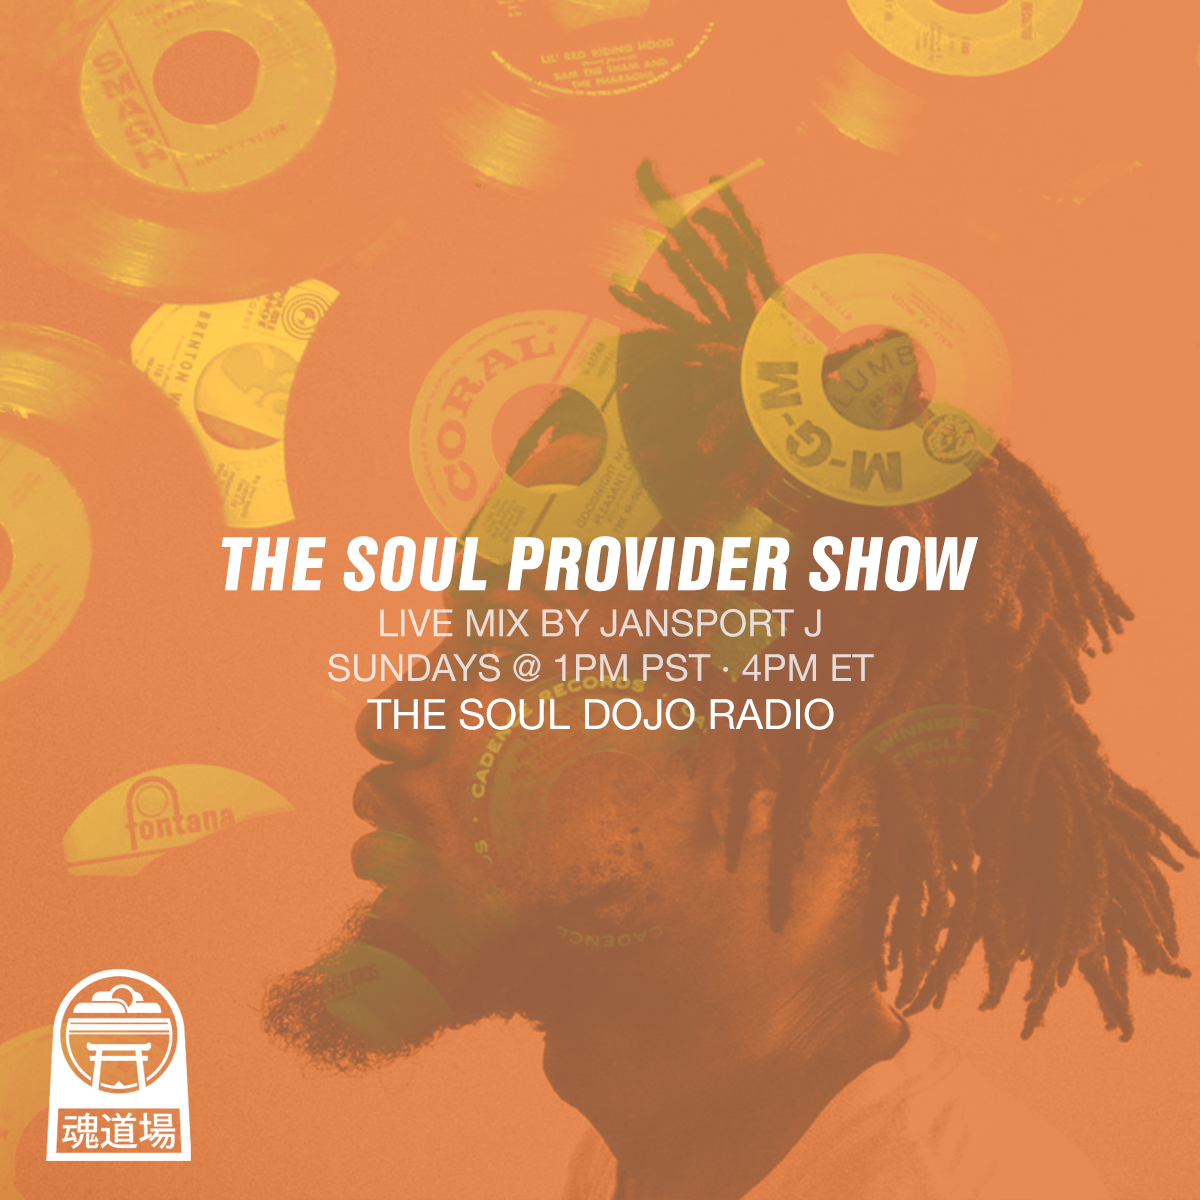 The Soul Provider Show - Jansport J hits us with a weekly dose of soul and funk in this mix series. Premiers every Sunday @ 1pm PST on The Soul Dojo Radio.